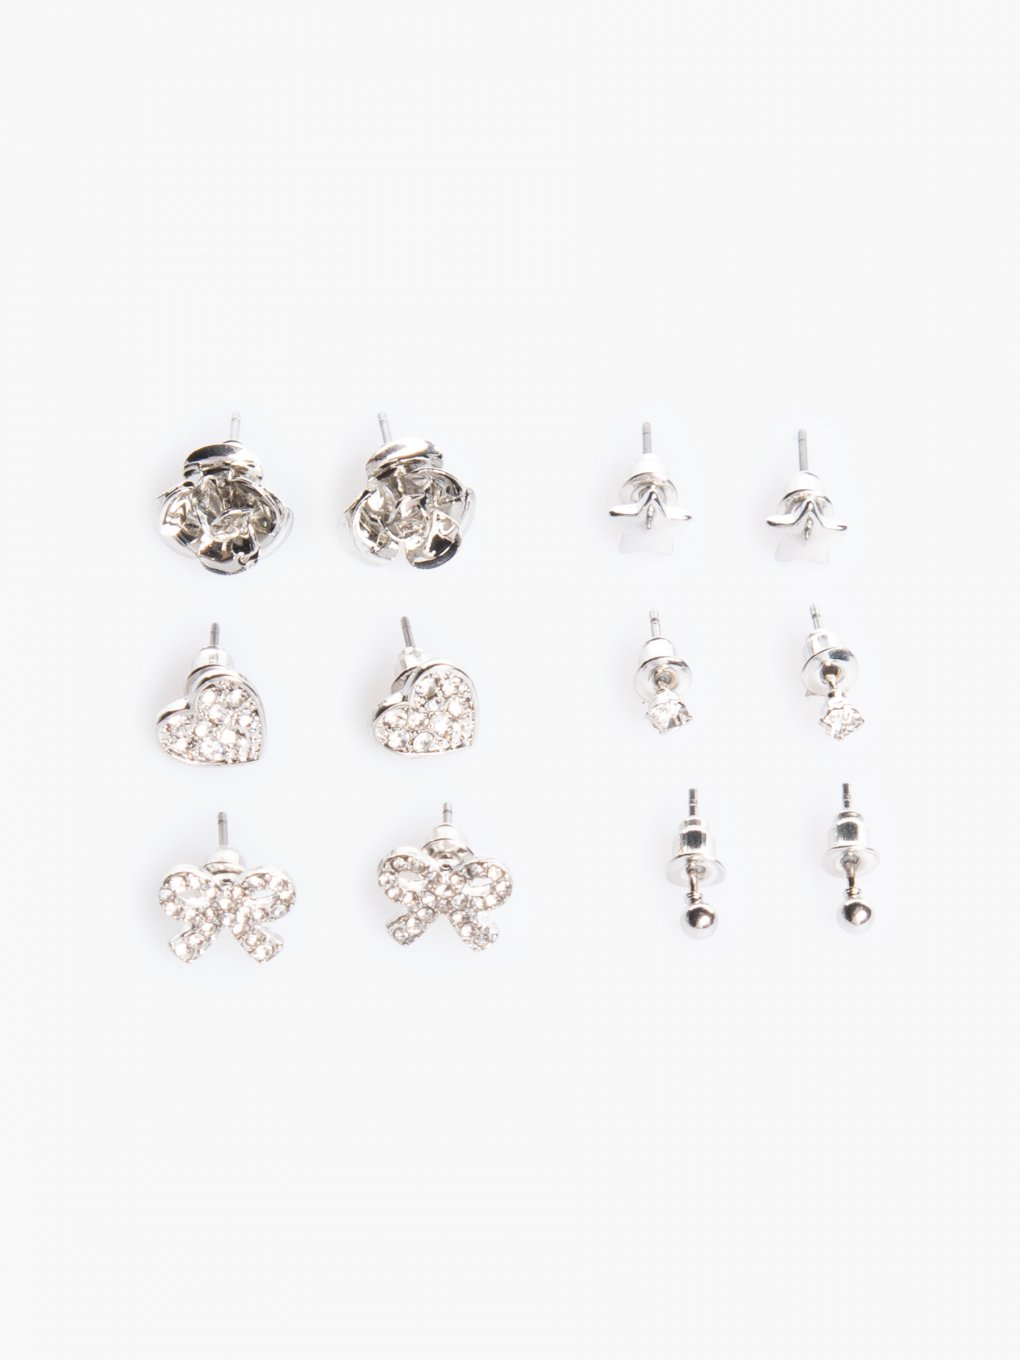 6-pairs earrings